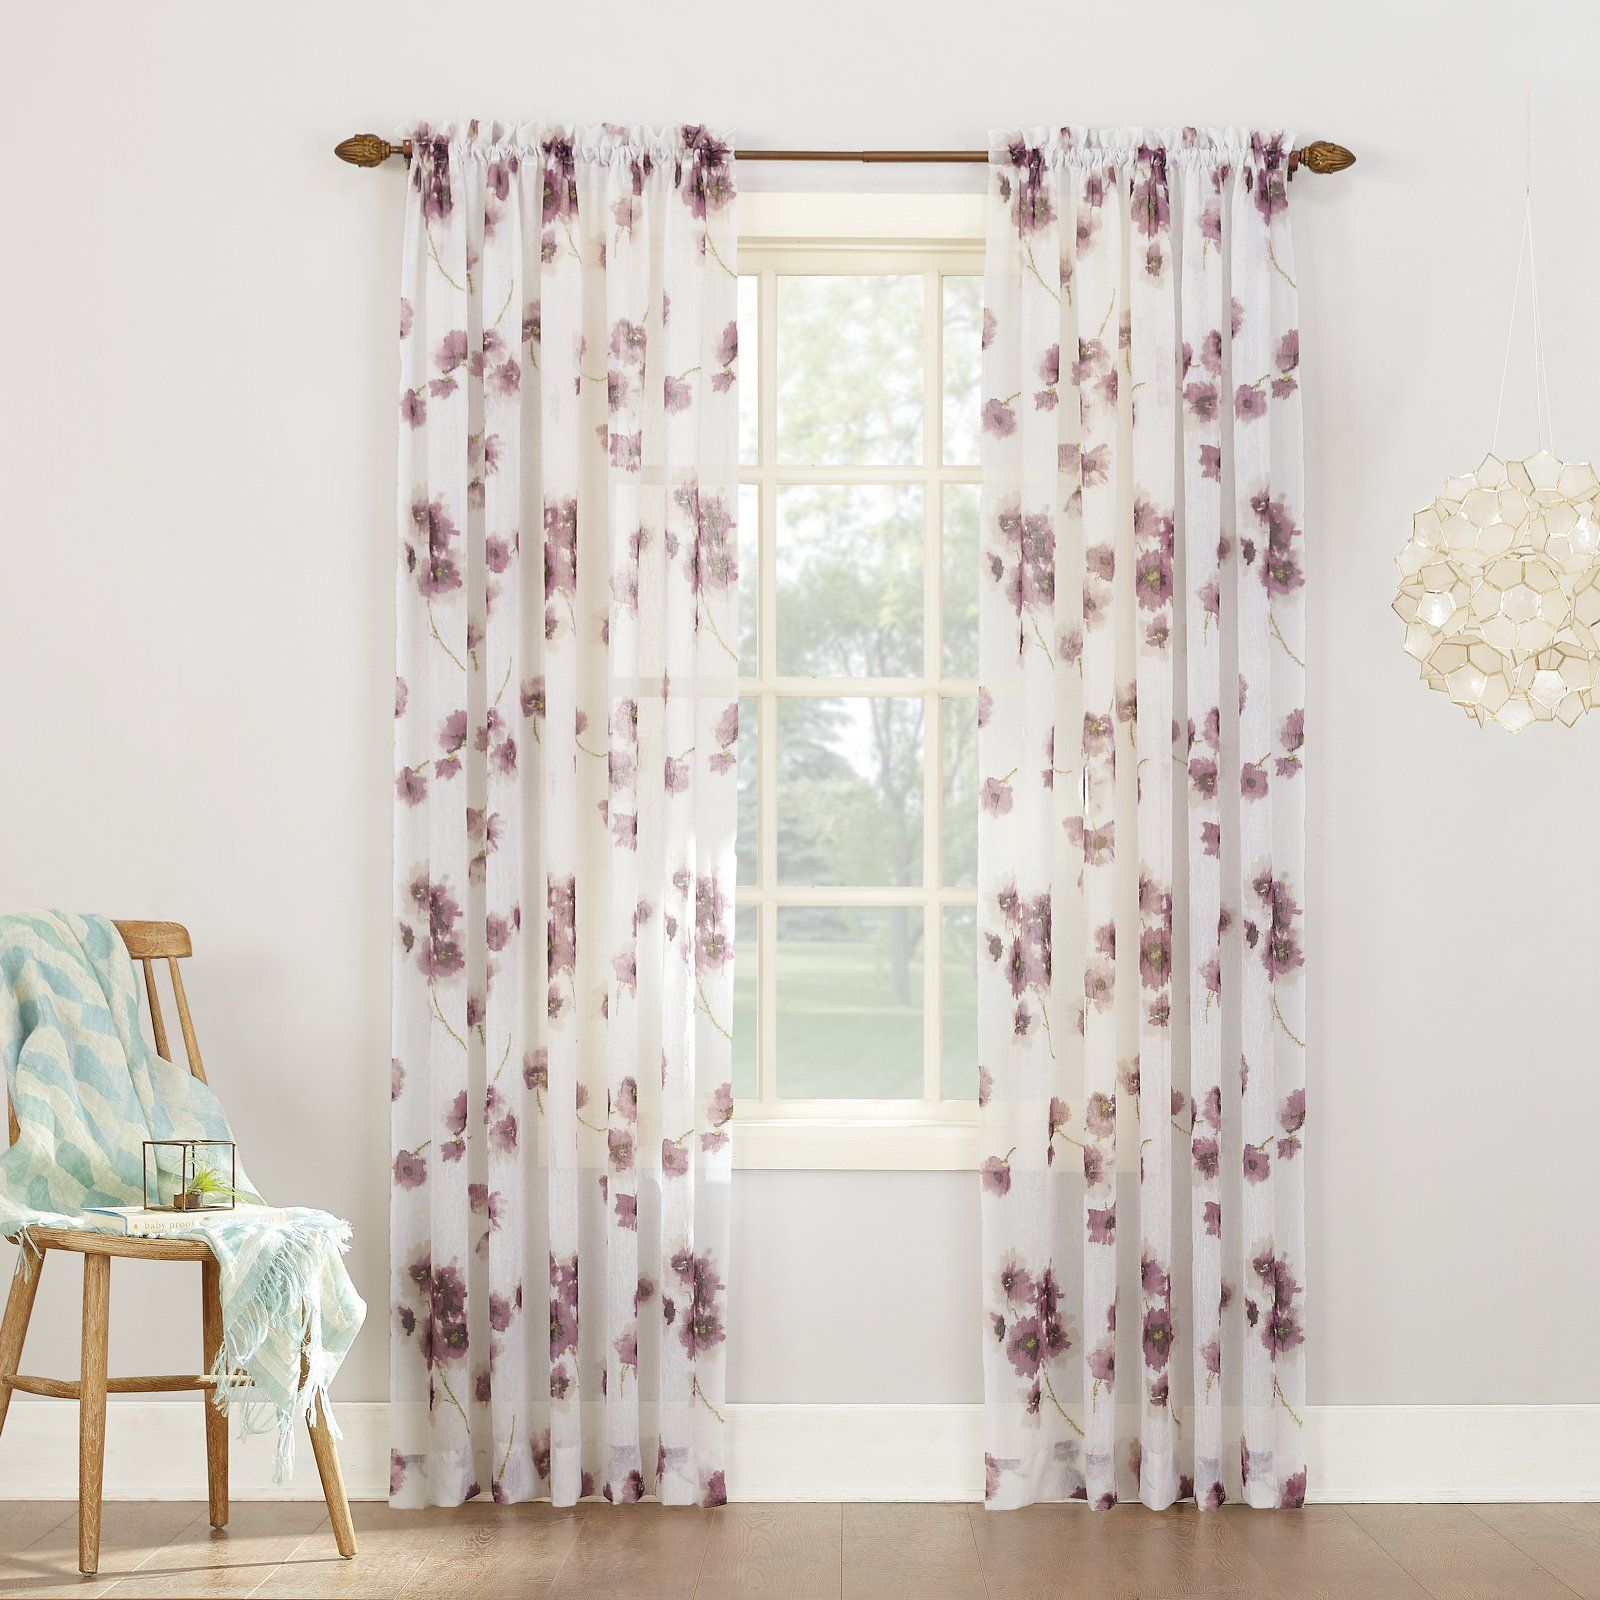 Lavender Sheer Curtains No 918 Kiki Voile Rod Pocket Curtain Panel In 2019 Products